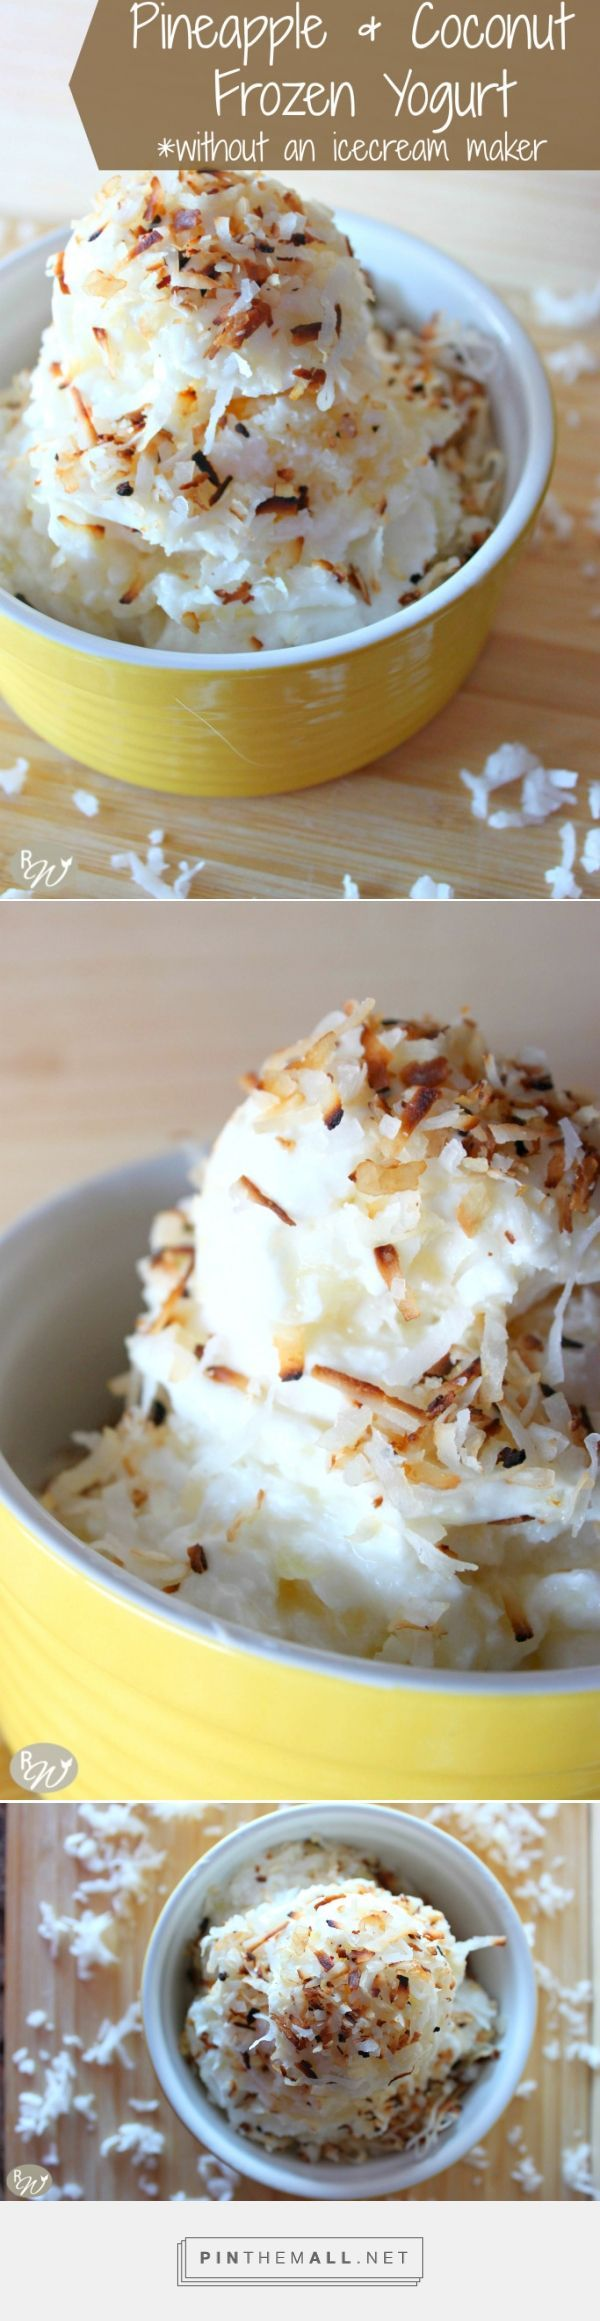 Pineapple Coconut frozen yogurt (no ice cream maker needed!) | therusticwillow.com